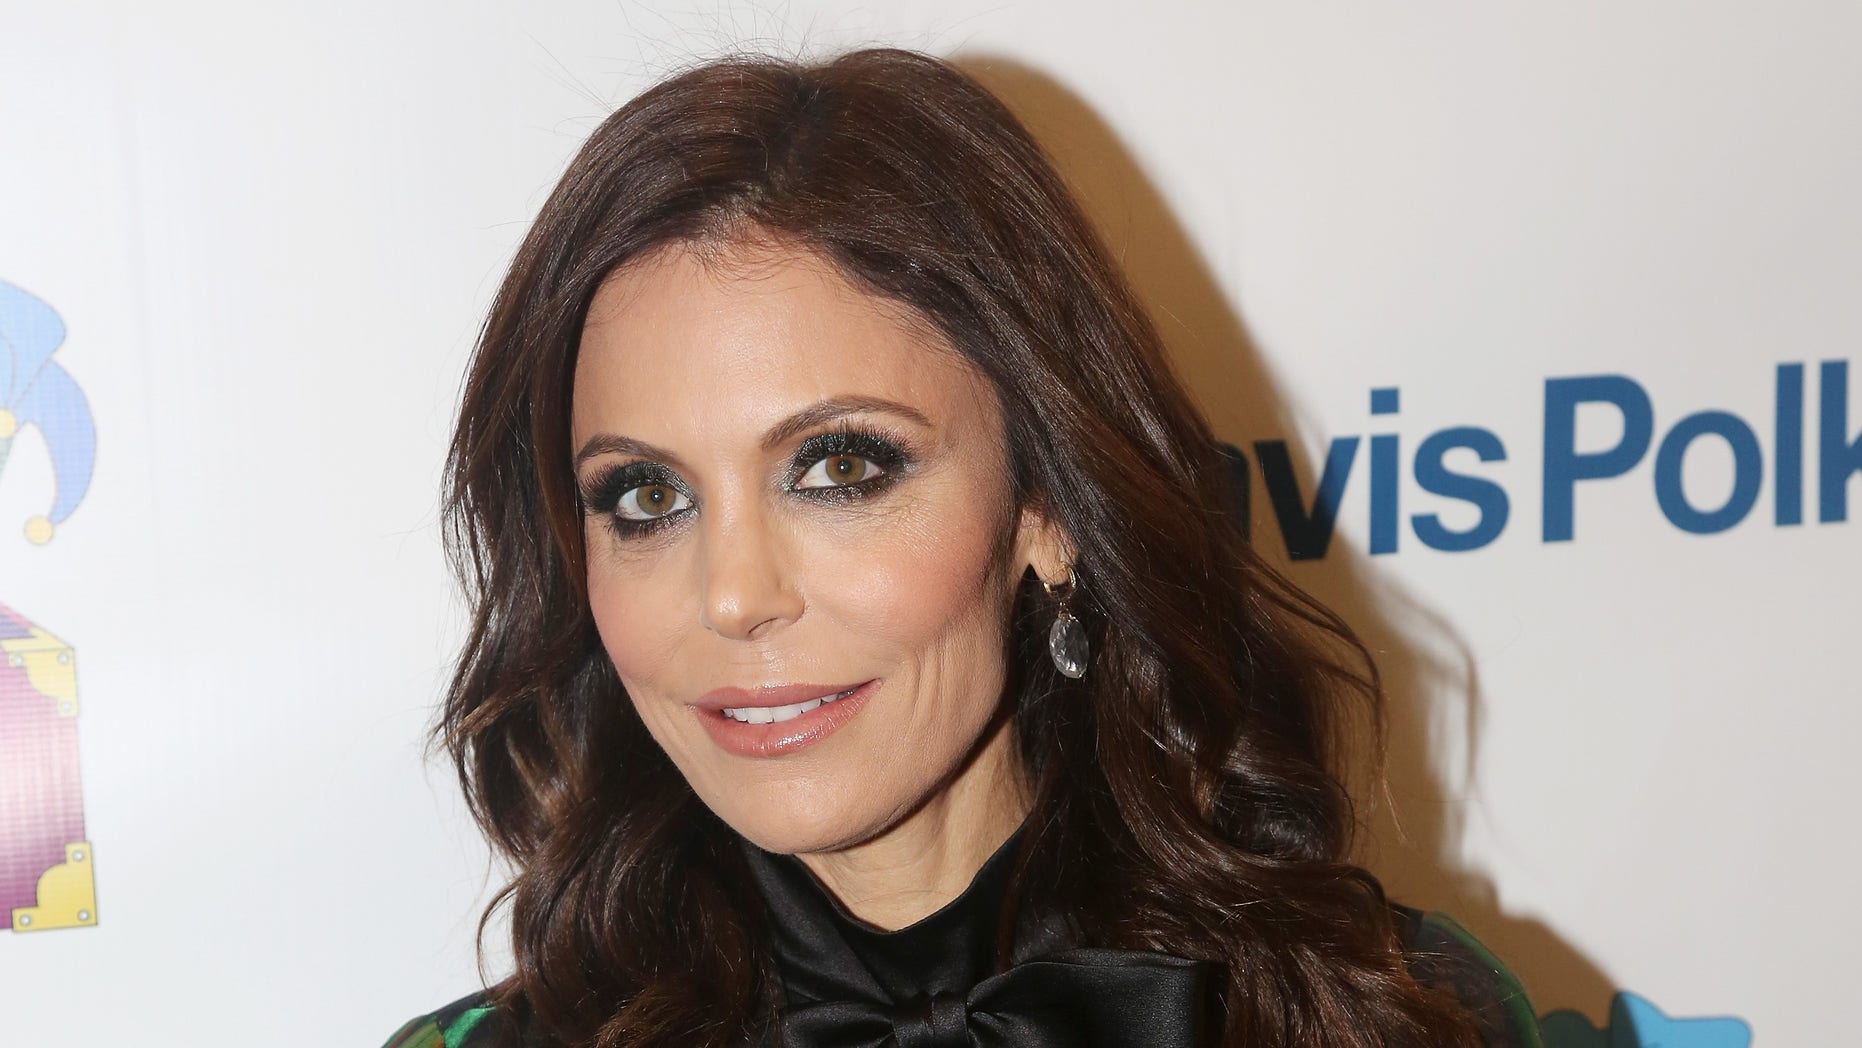 'Real Housewives' star Bethenny Frankel hospitalized at Newton-Wellesley after allergic reaction